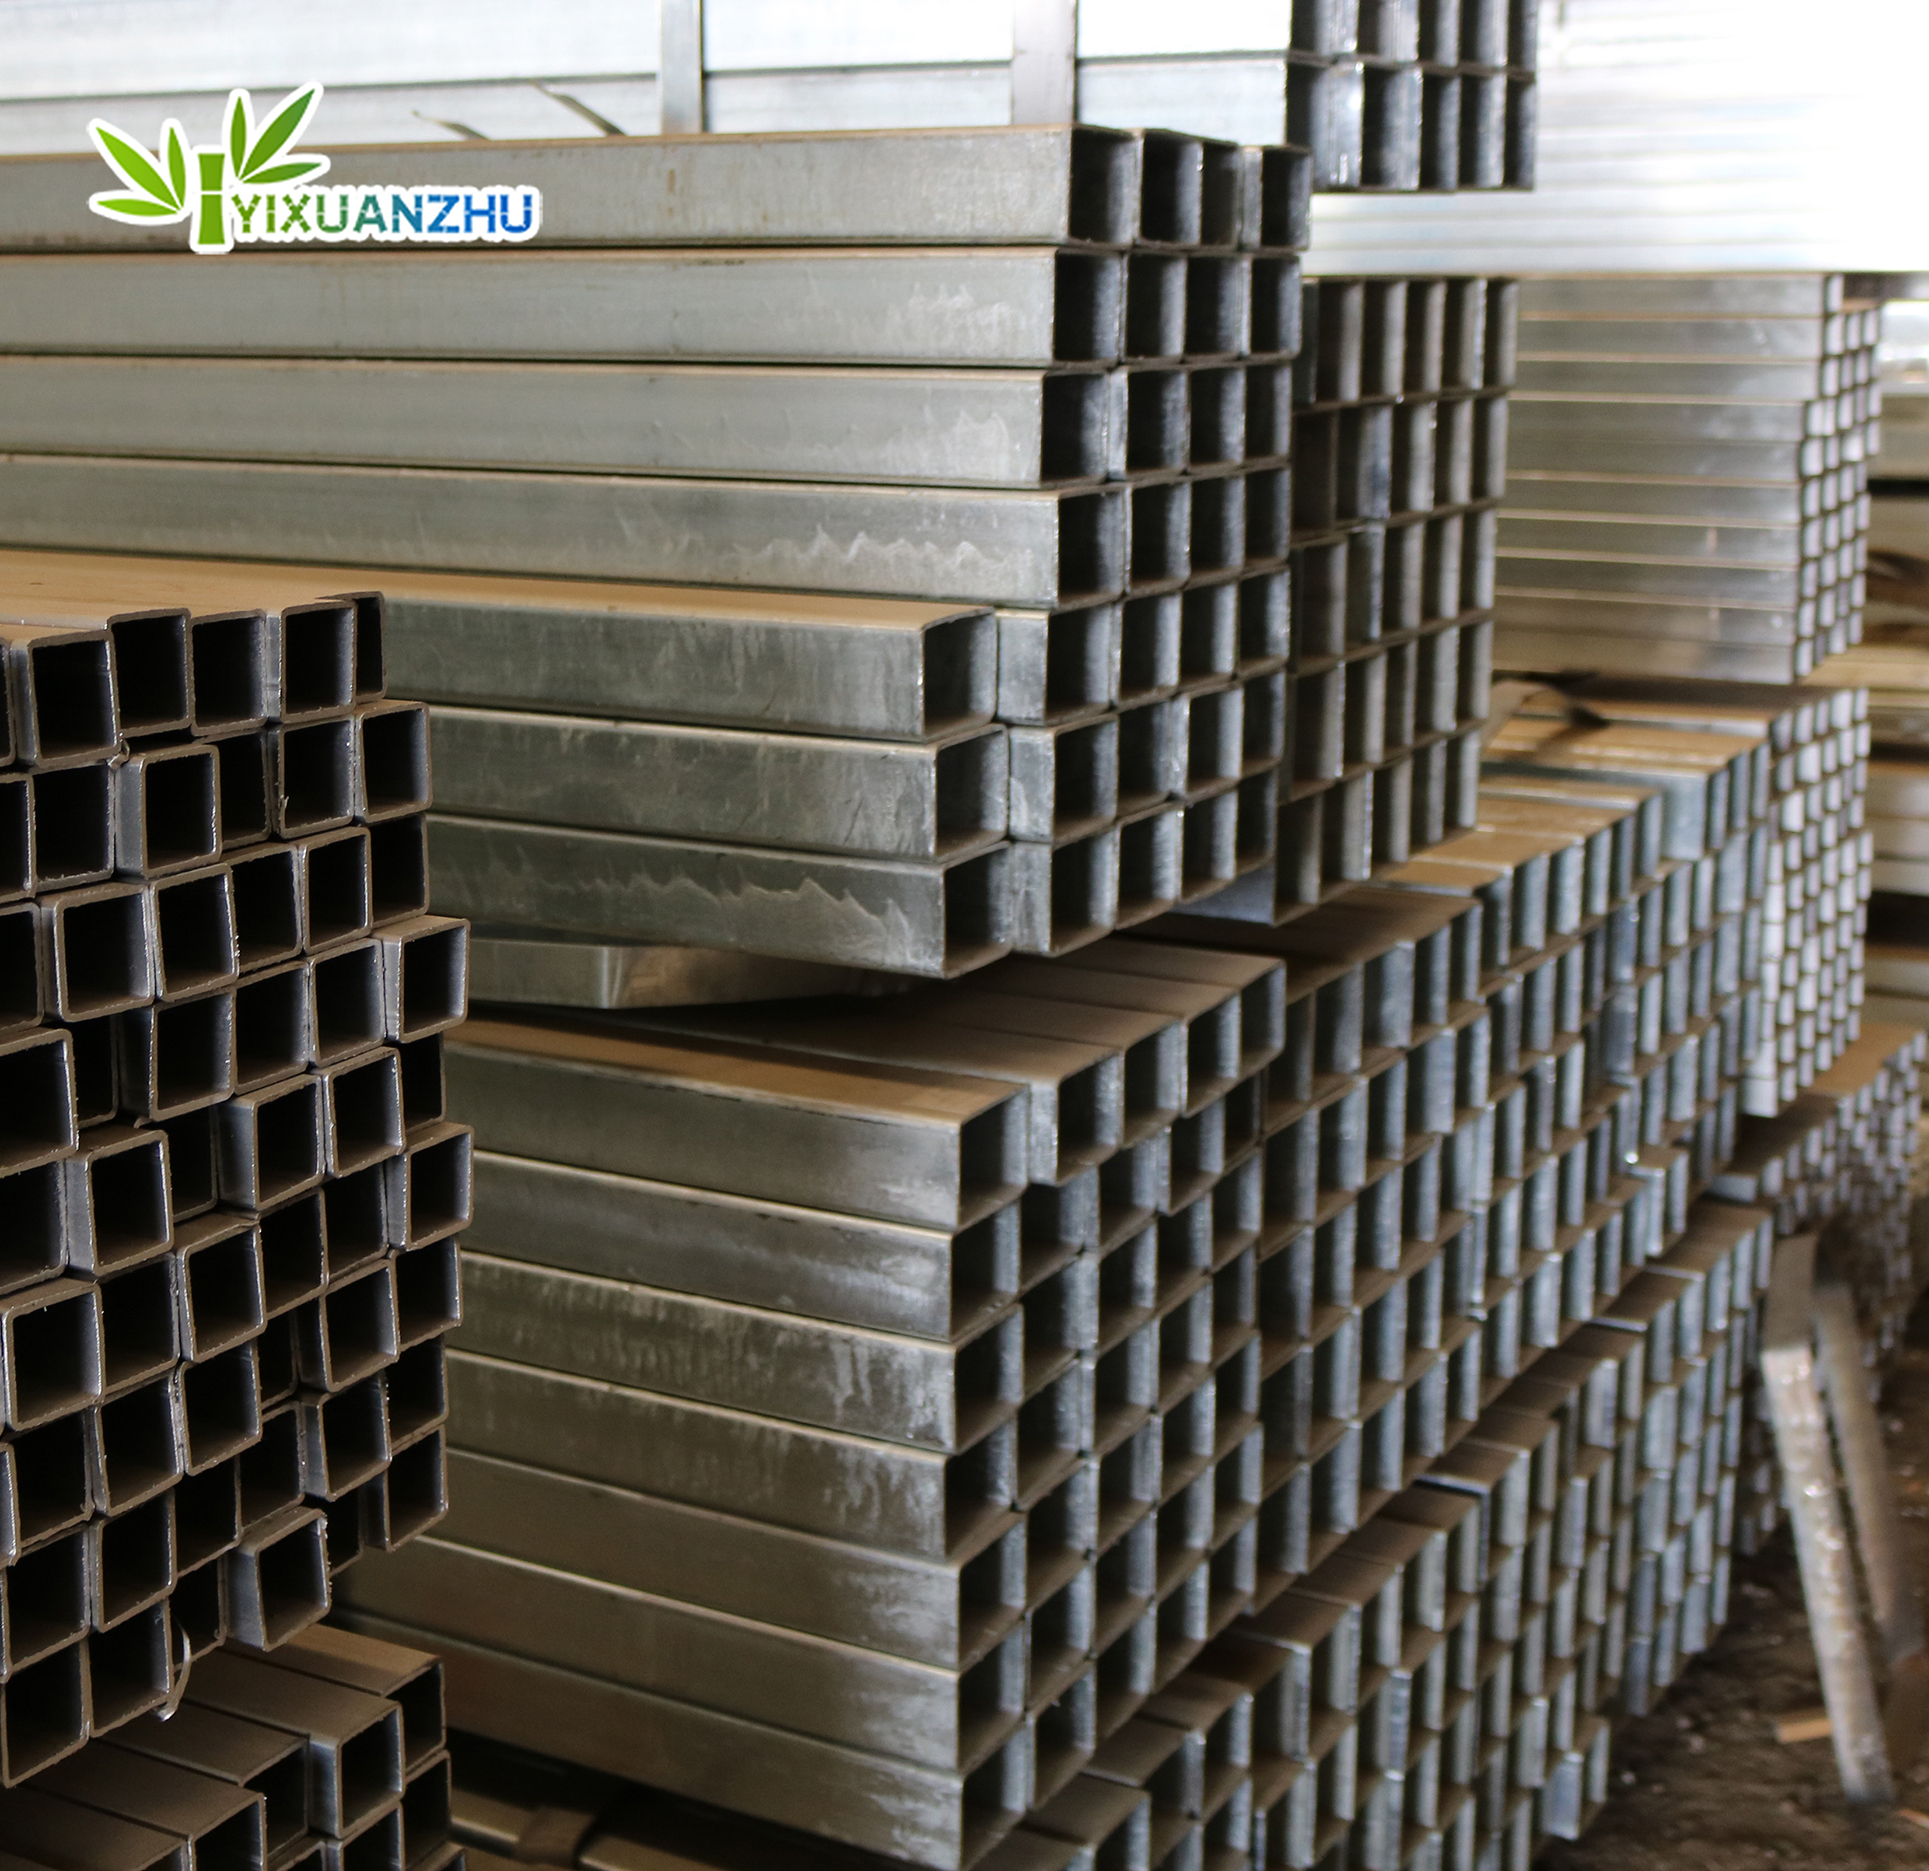 Ms square pipe weight chart erw tube 75x75 tube square pipe ms ms square pipe weight chart erw tube 75x75 tube square pipe ms square pipe weight chart erw tube 75x75 tube square pipe suppliers and manufacturers at geenschuldenfo Choice Image